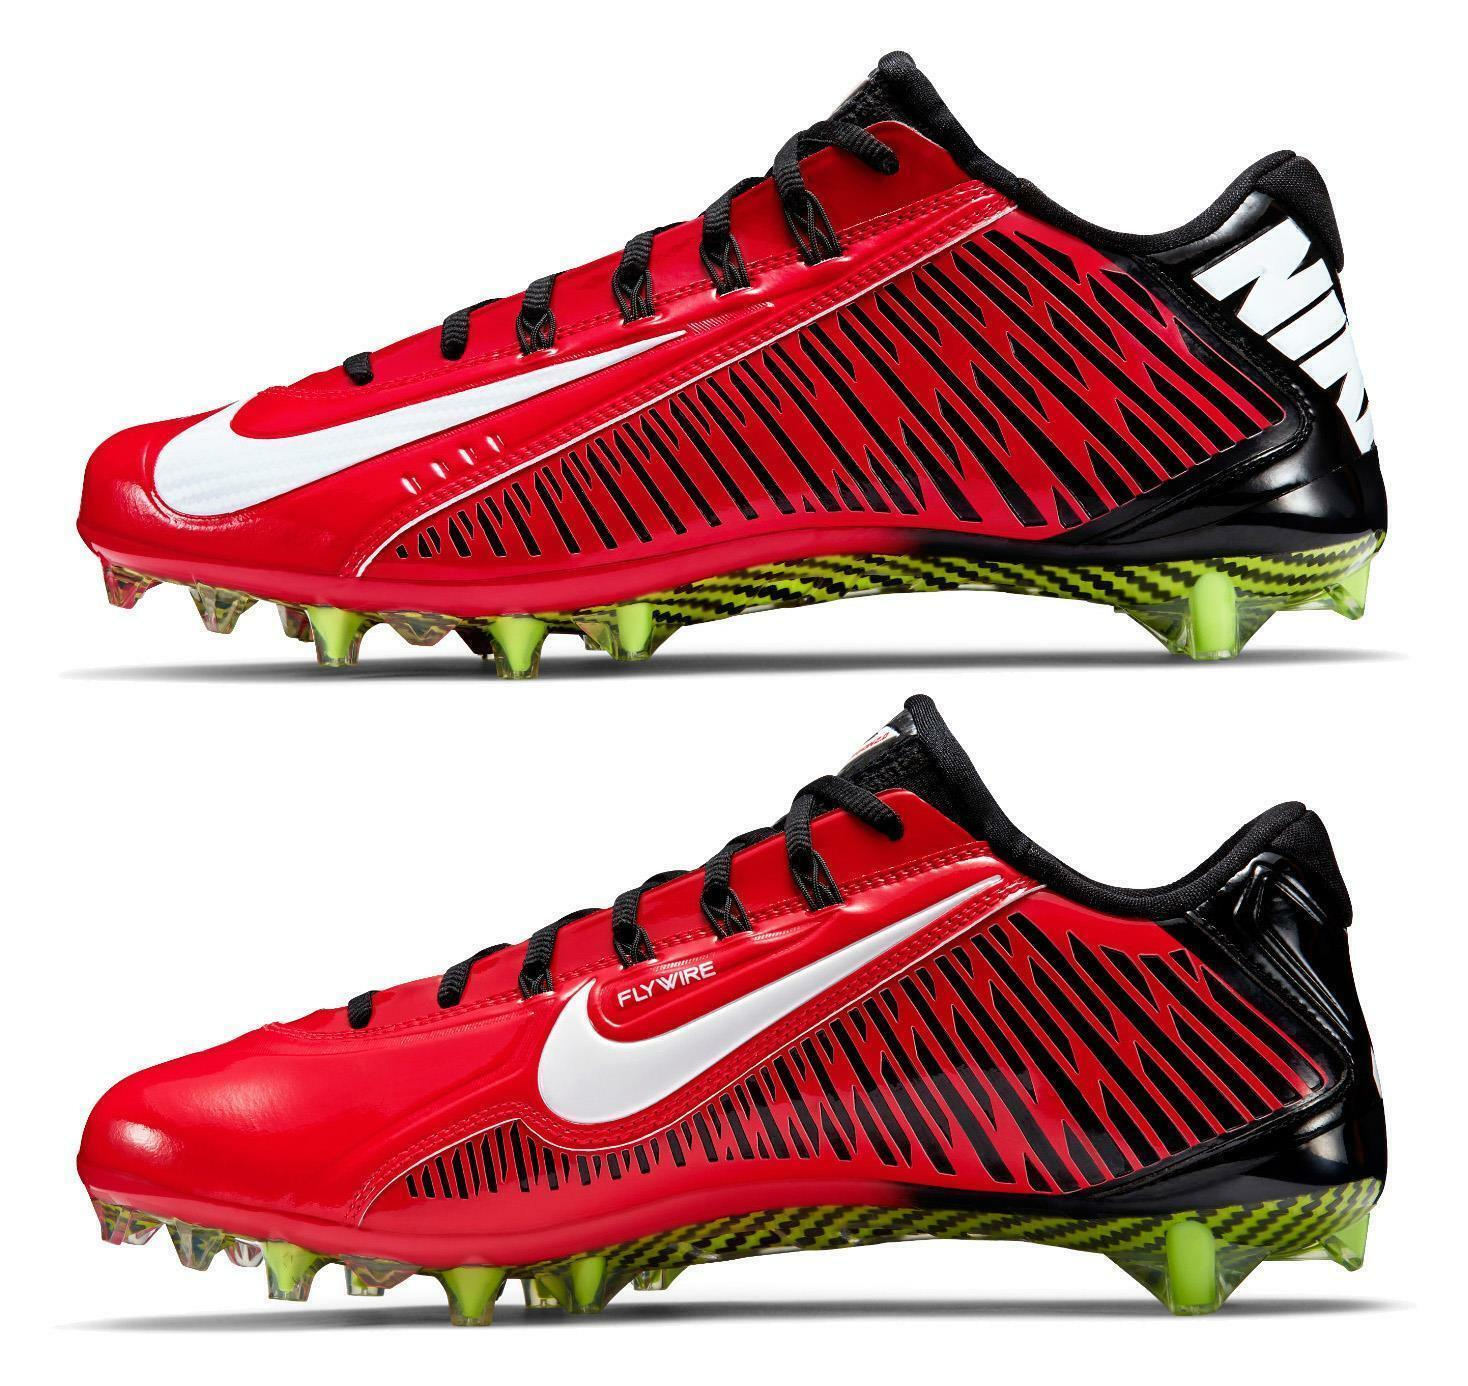 reputable site accbb 3bb5d ...  155 NIKE VAPOR CARBON ELITE TD FOOTBALL CLEATS 657441-602 657441-602  657441- ...